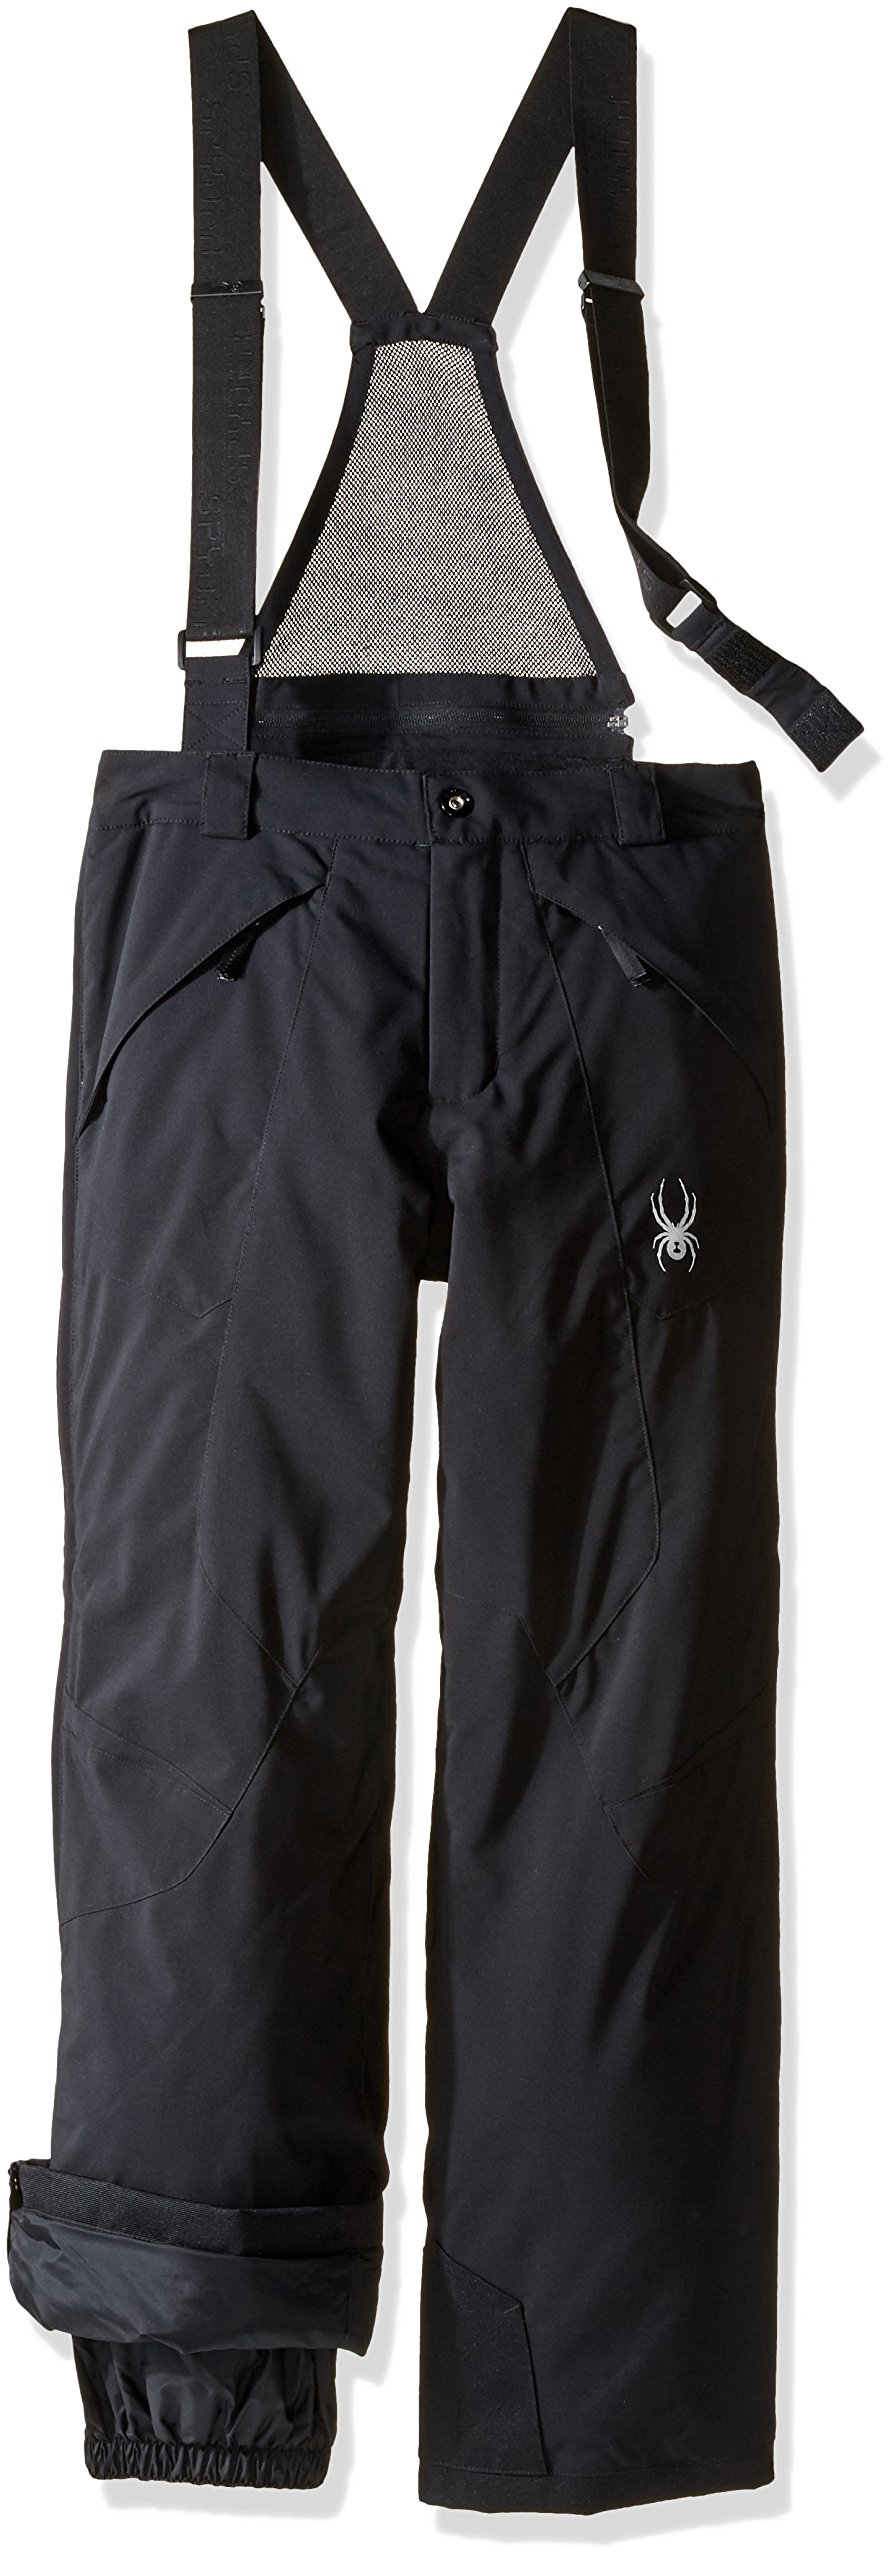 Spyder Boys Force Plus Pants, Size 10, Black